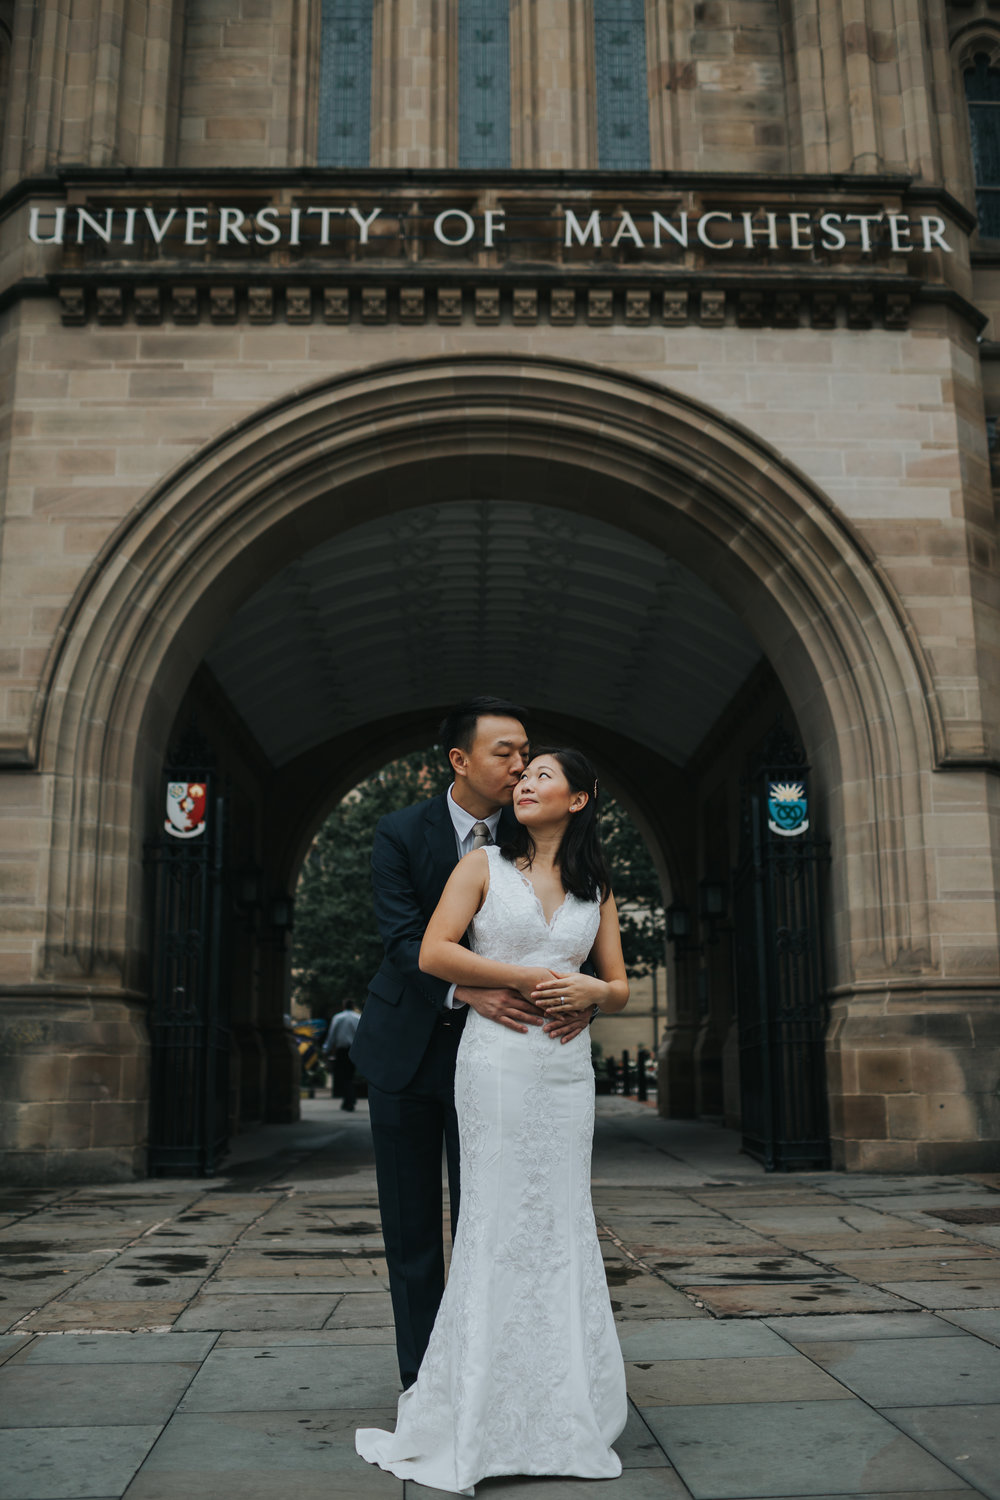 Couple embrace outside Manchester university, where they first met.